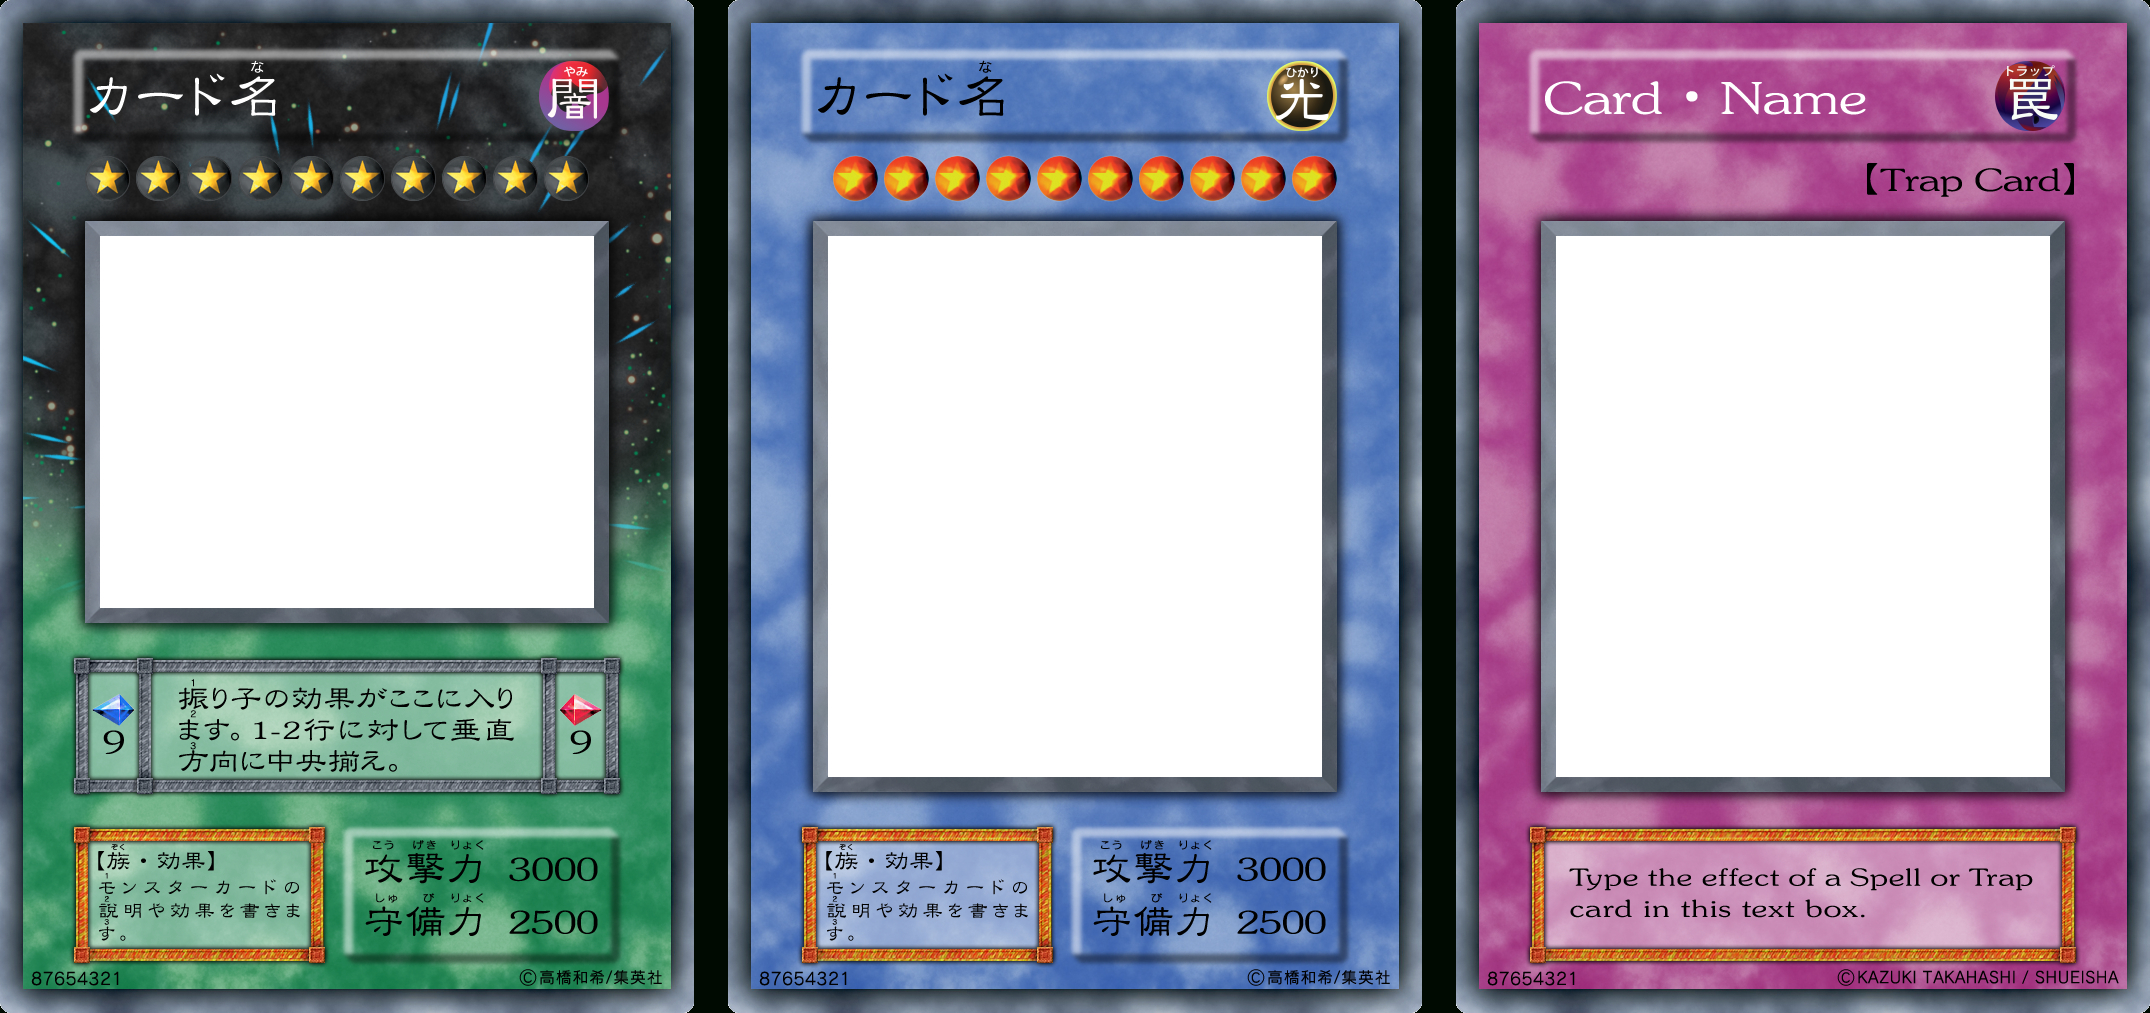 Ygo Series  Master Psd Japaneseicycatelf On Deviantart Throughout Yugioh Card Template